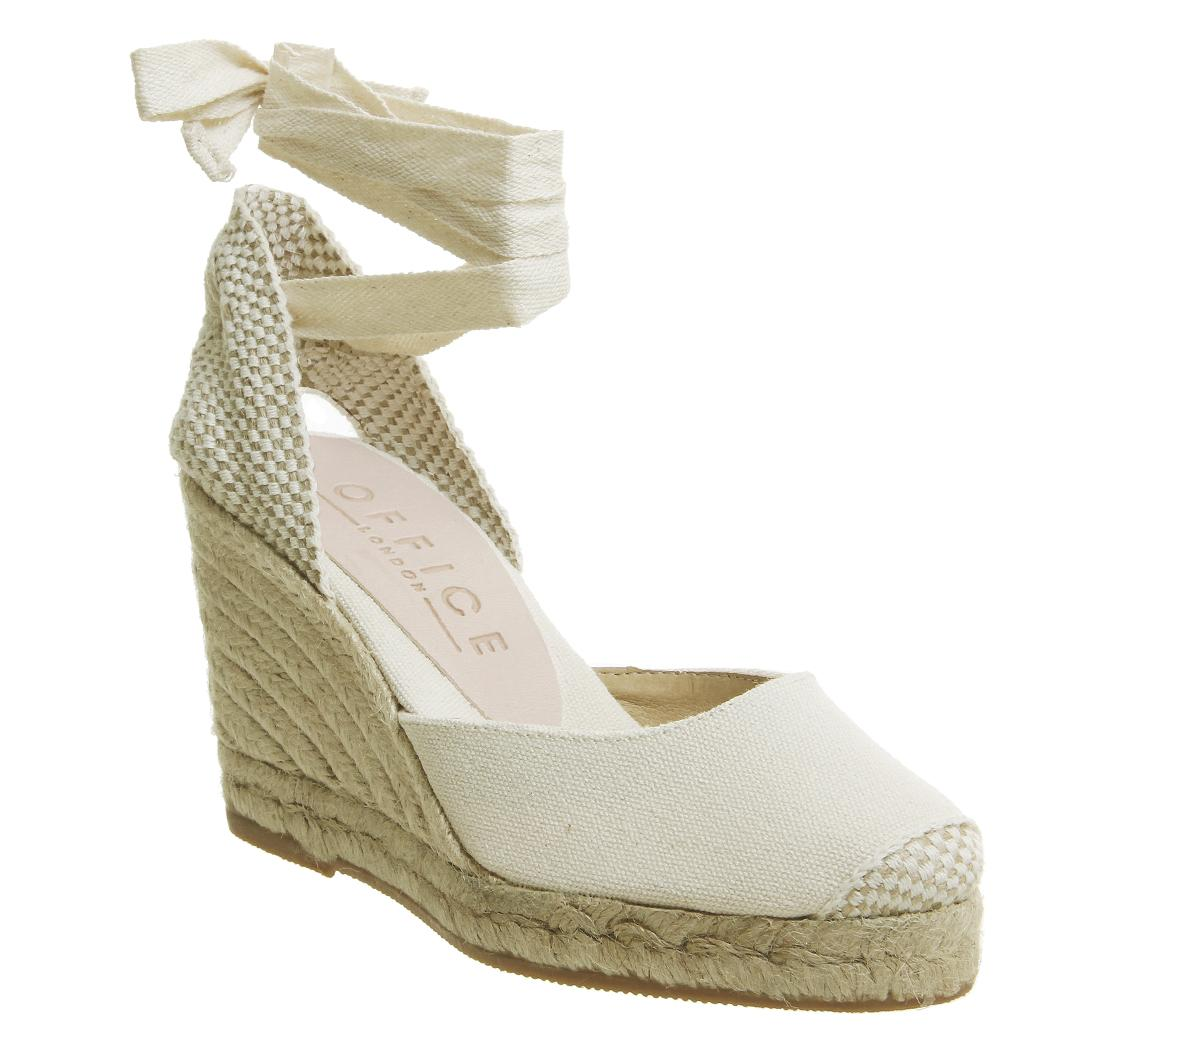 Marmalade Espadrille Wedges